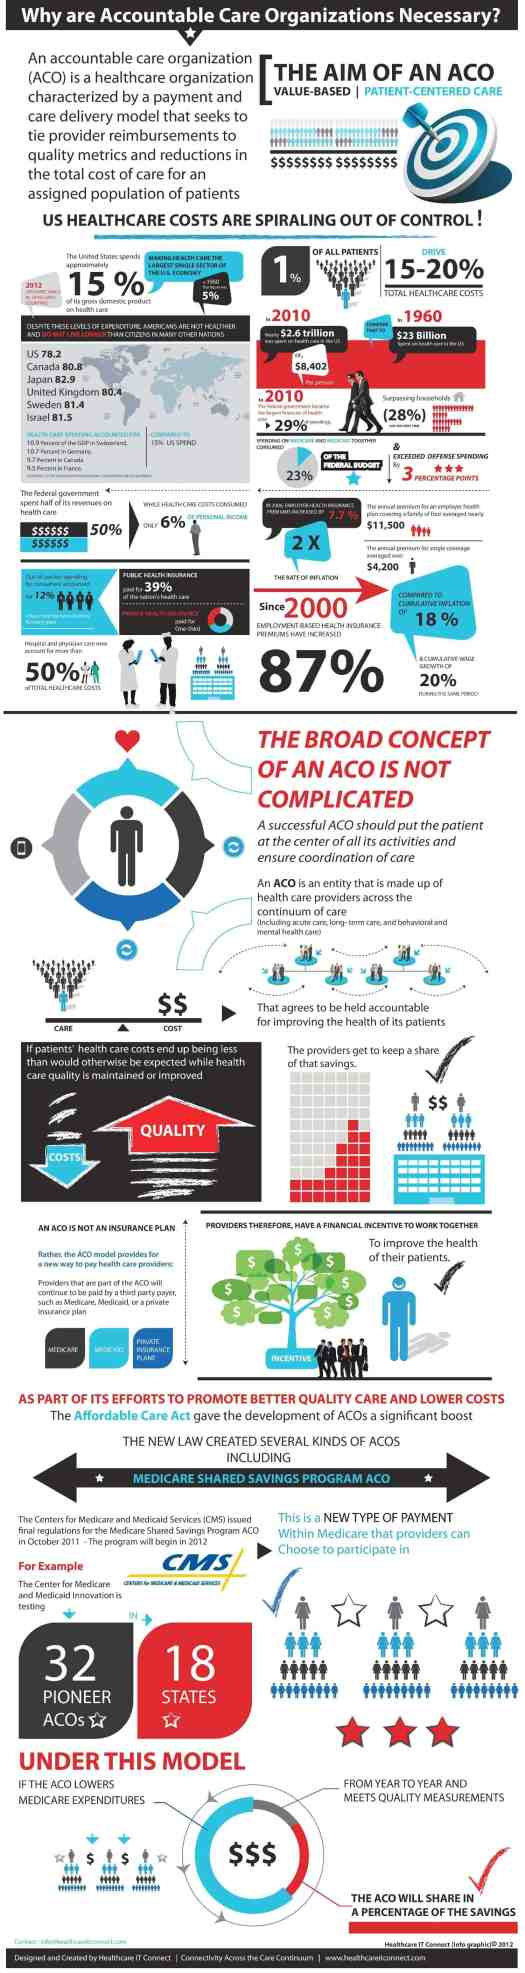 ACO - What Is The Aim of An Accountable Care Organization? Infographic